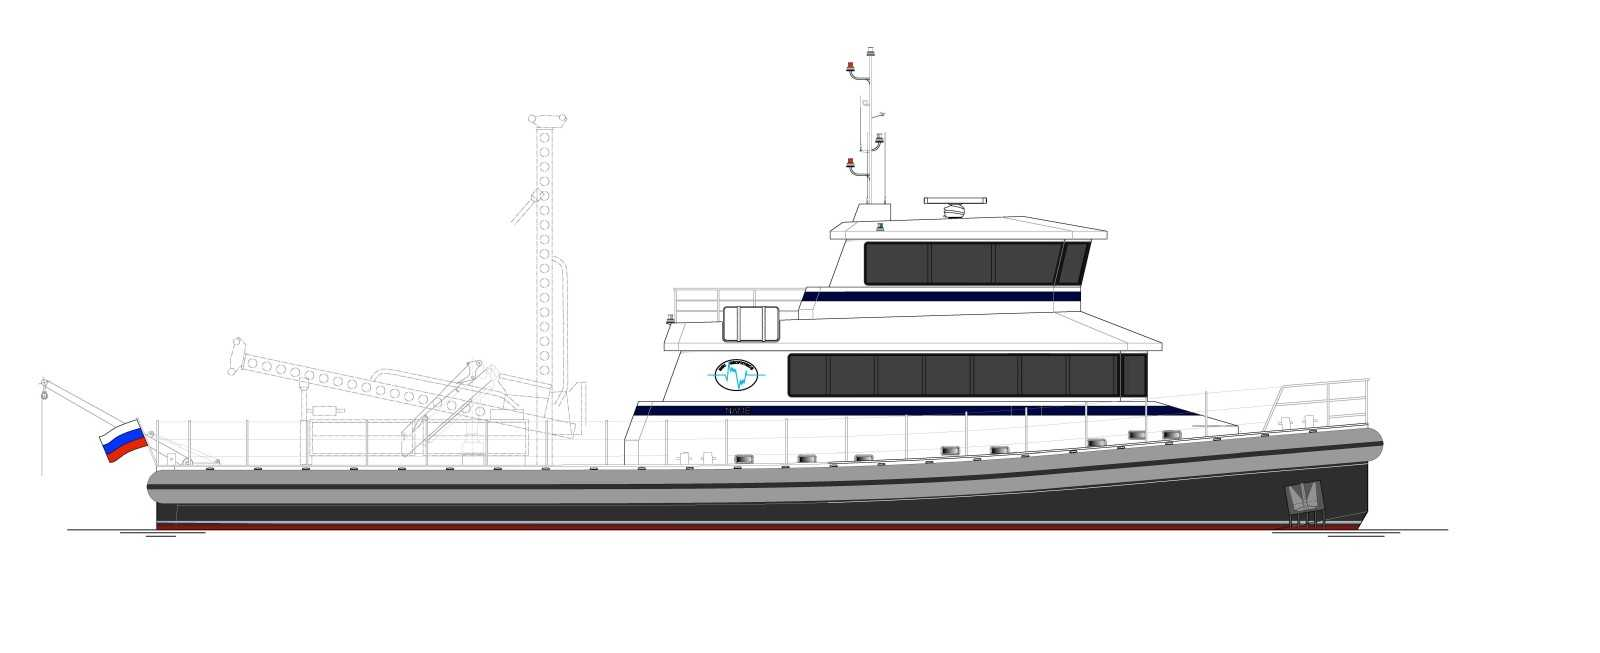 D95 - General Plan | Next Generation Shipyards